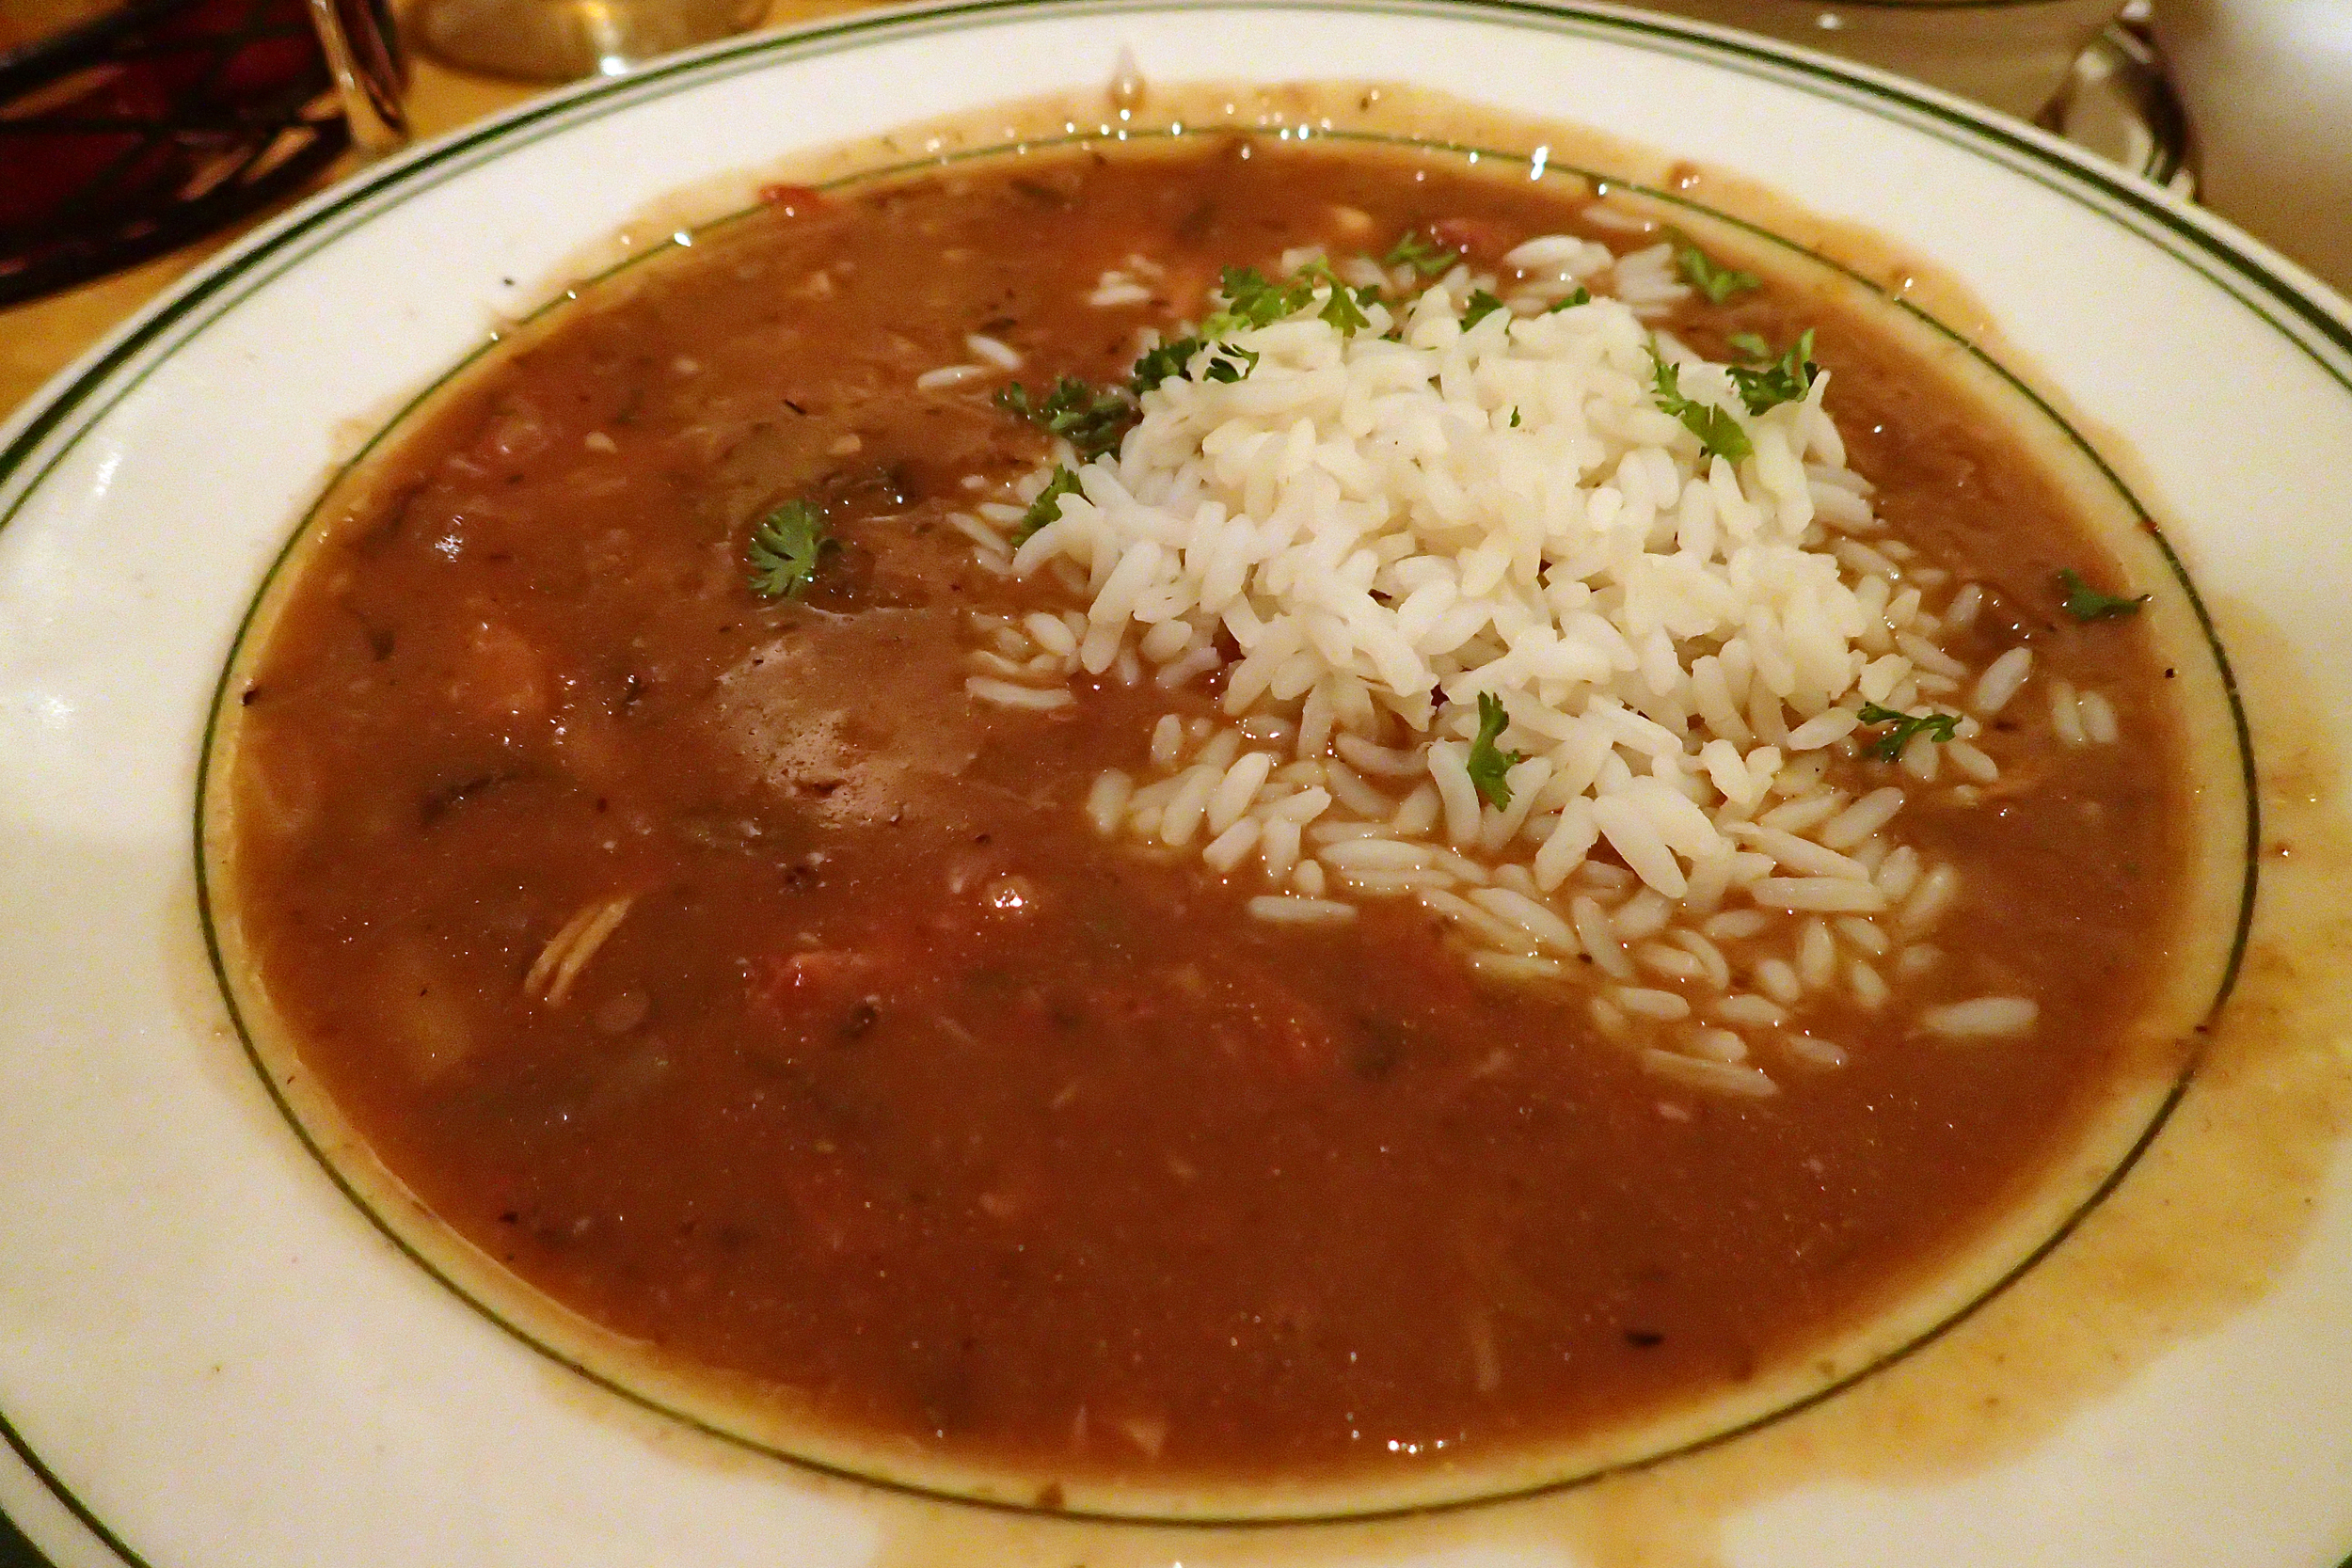 Chicken andouille gumbo at the Gumbo Shop